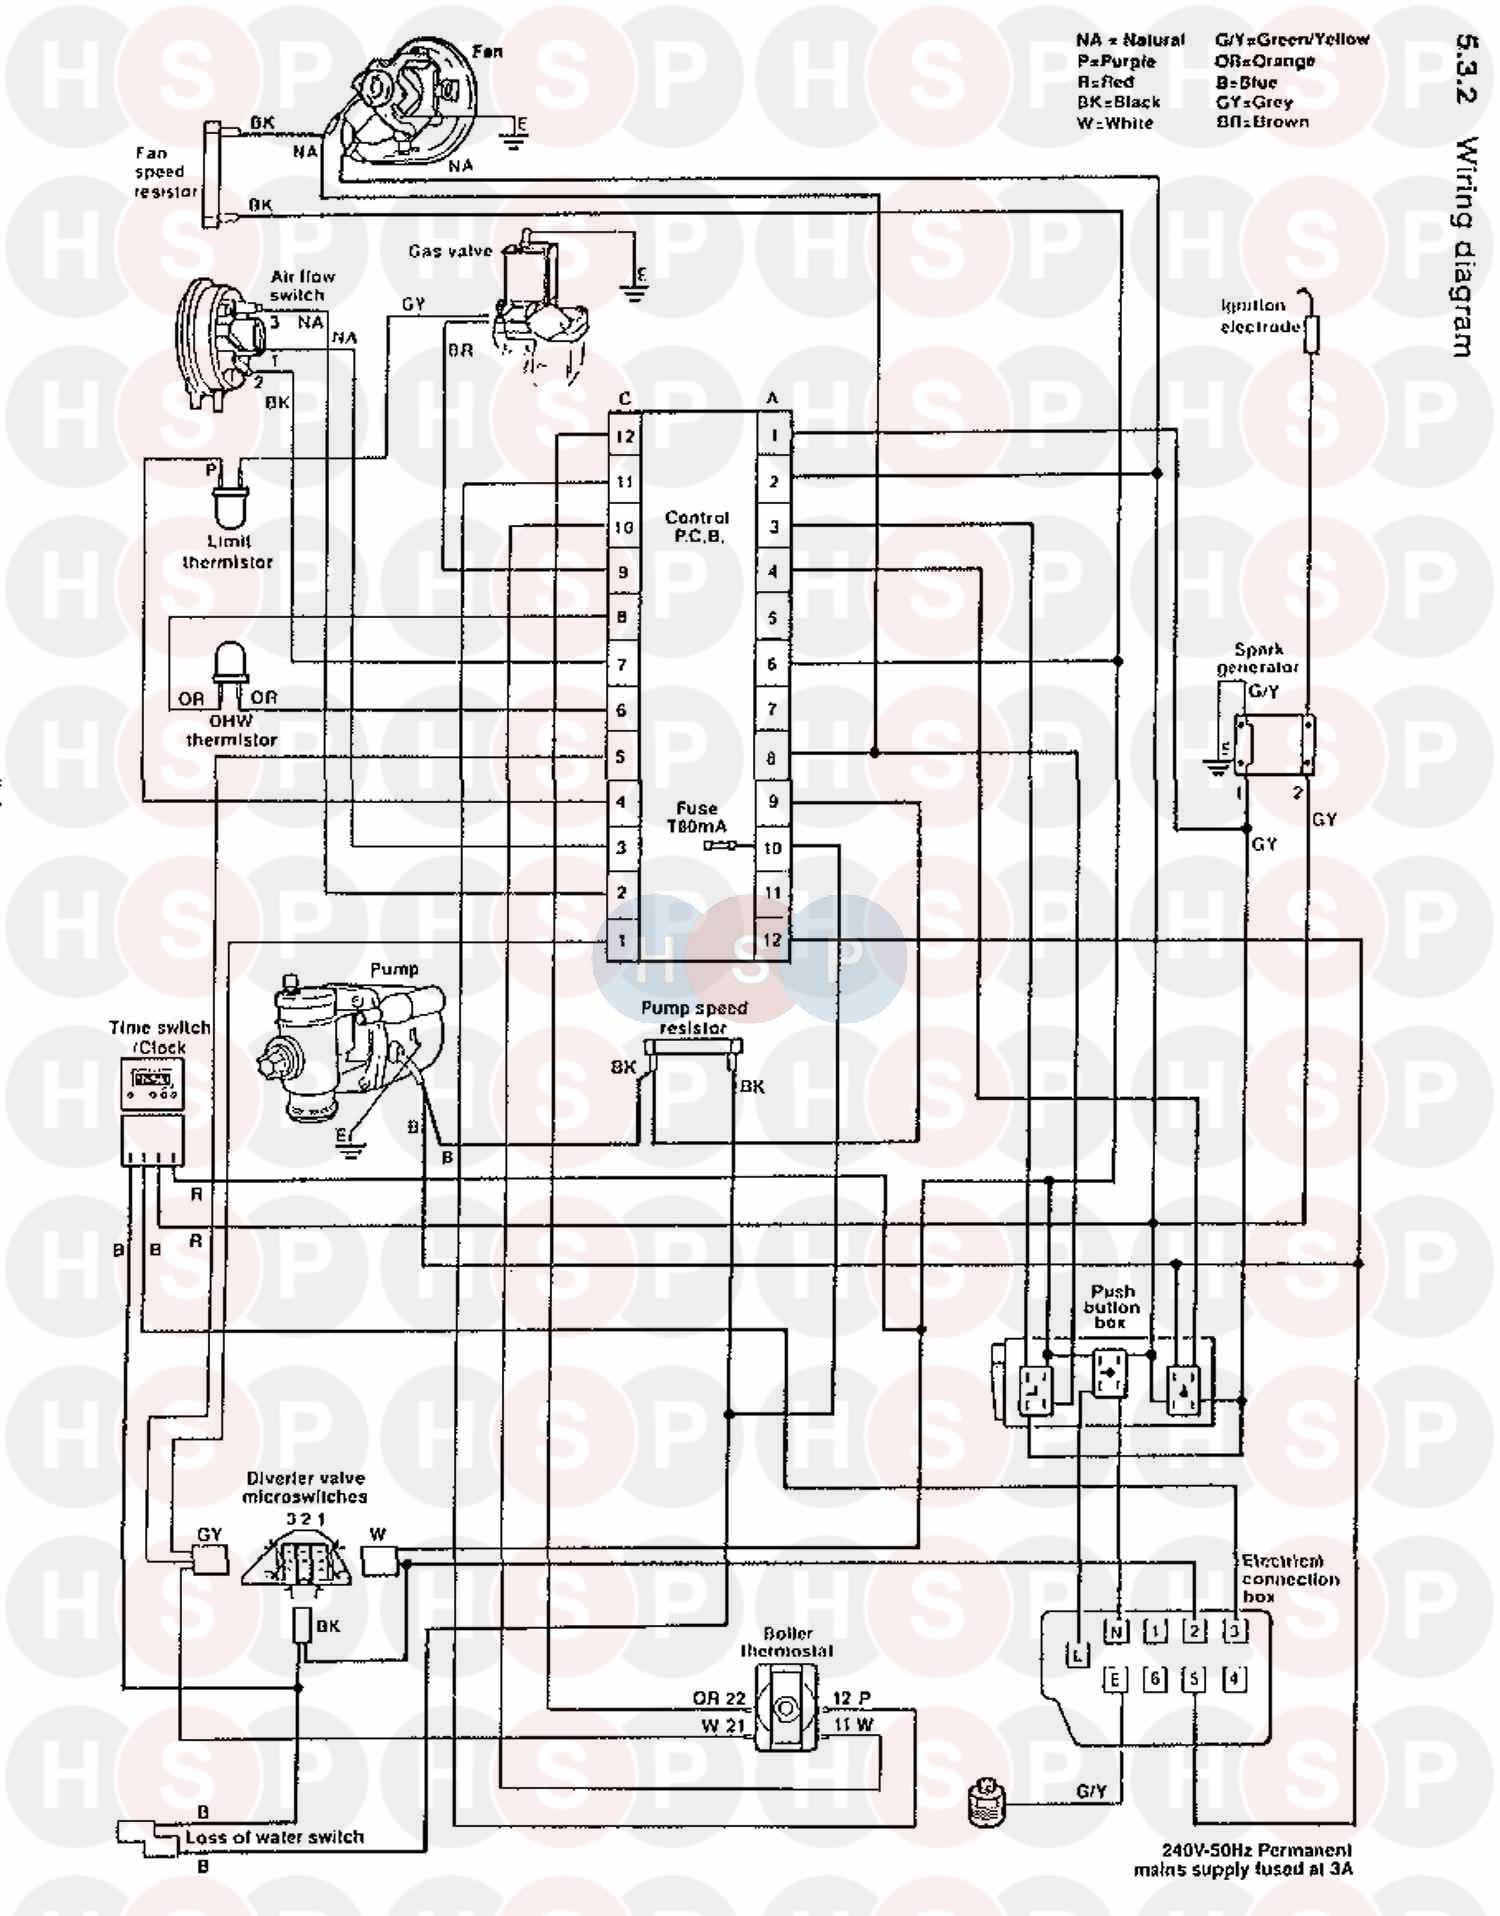 electrical control wiring diagram electrical image electrical control panel wiring diagram wiring diagram and hernes on electrical control wiring diagram